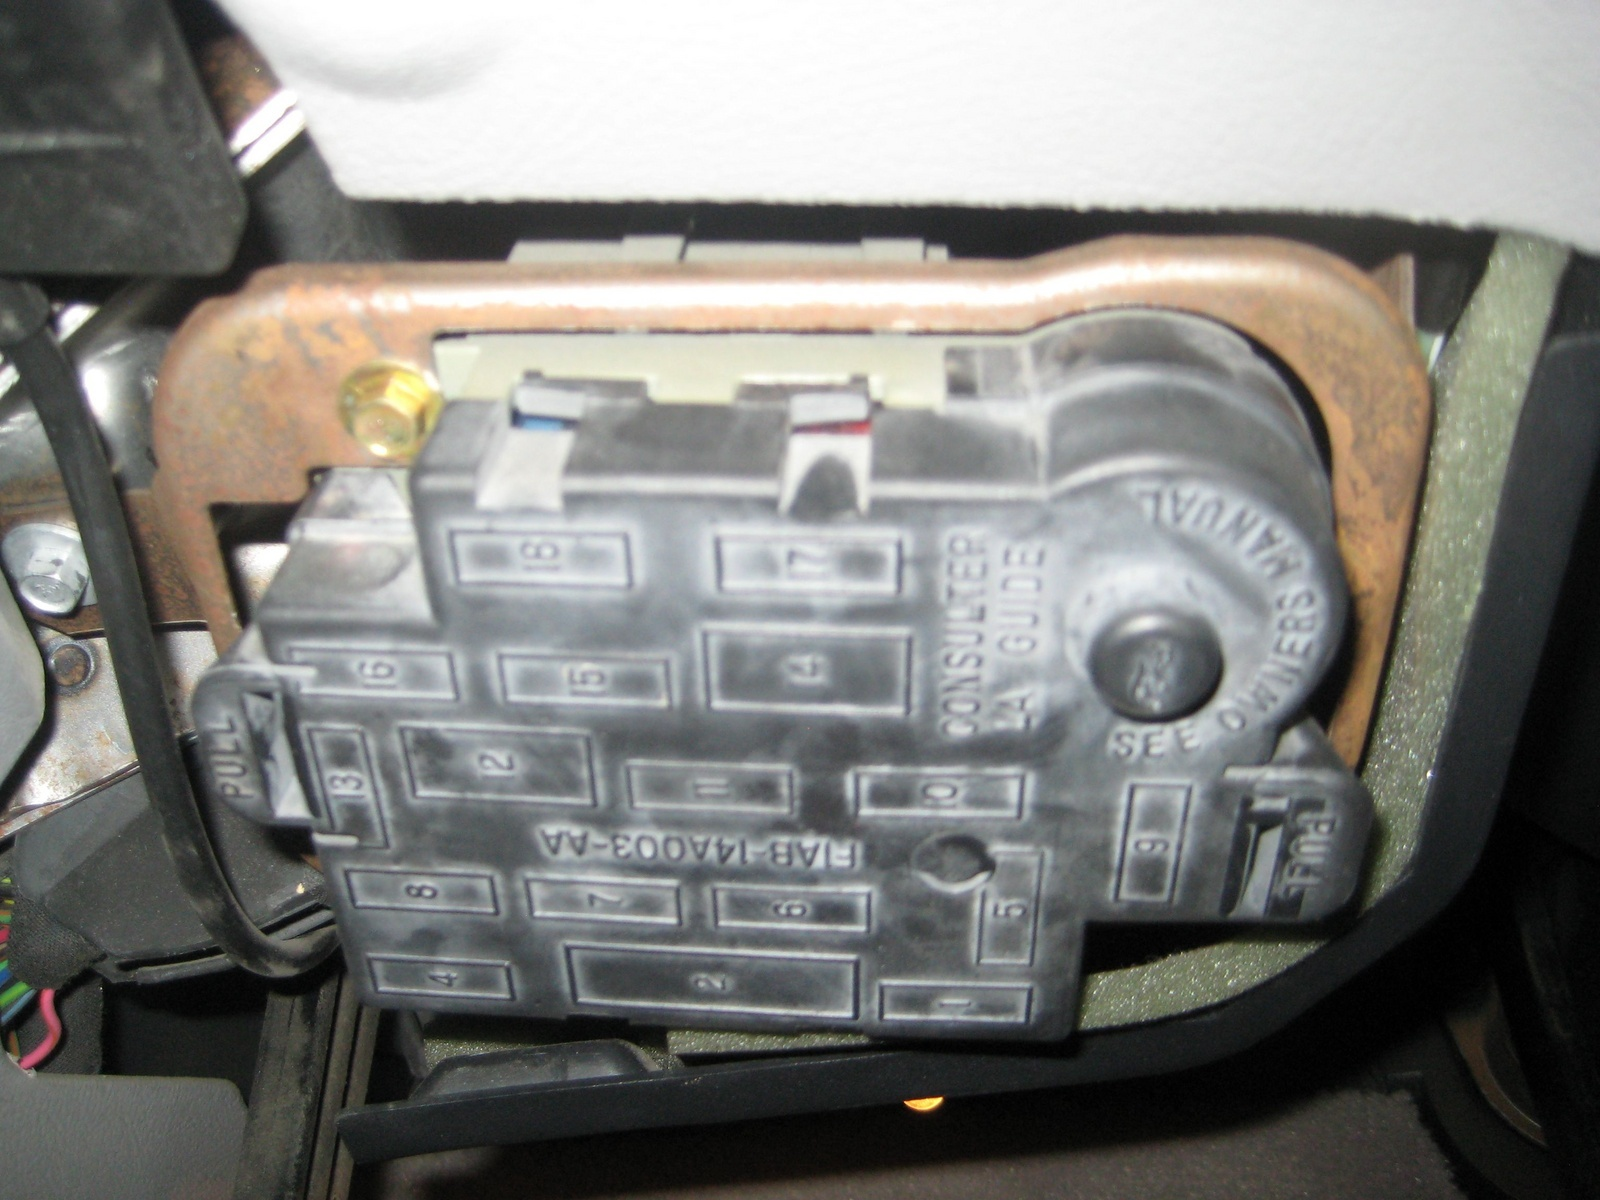 Mercury Car Fuse Box Wiring Diagram Sample 2005 Montego Grand Marquis Questions How Do I Open The Inside Smart Location